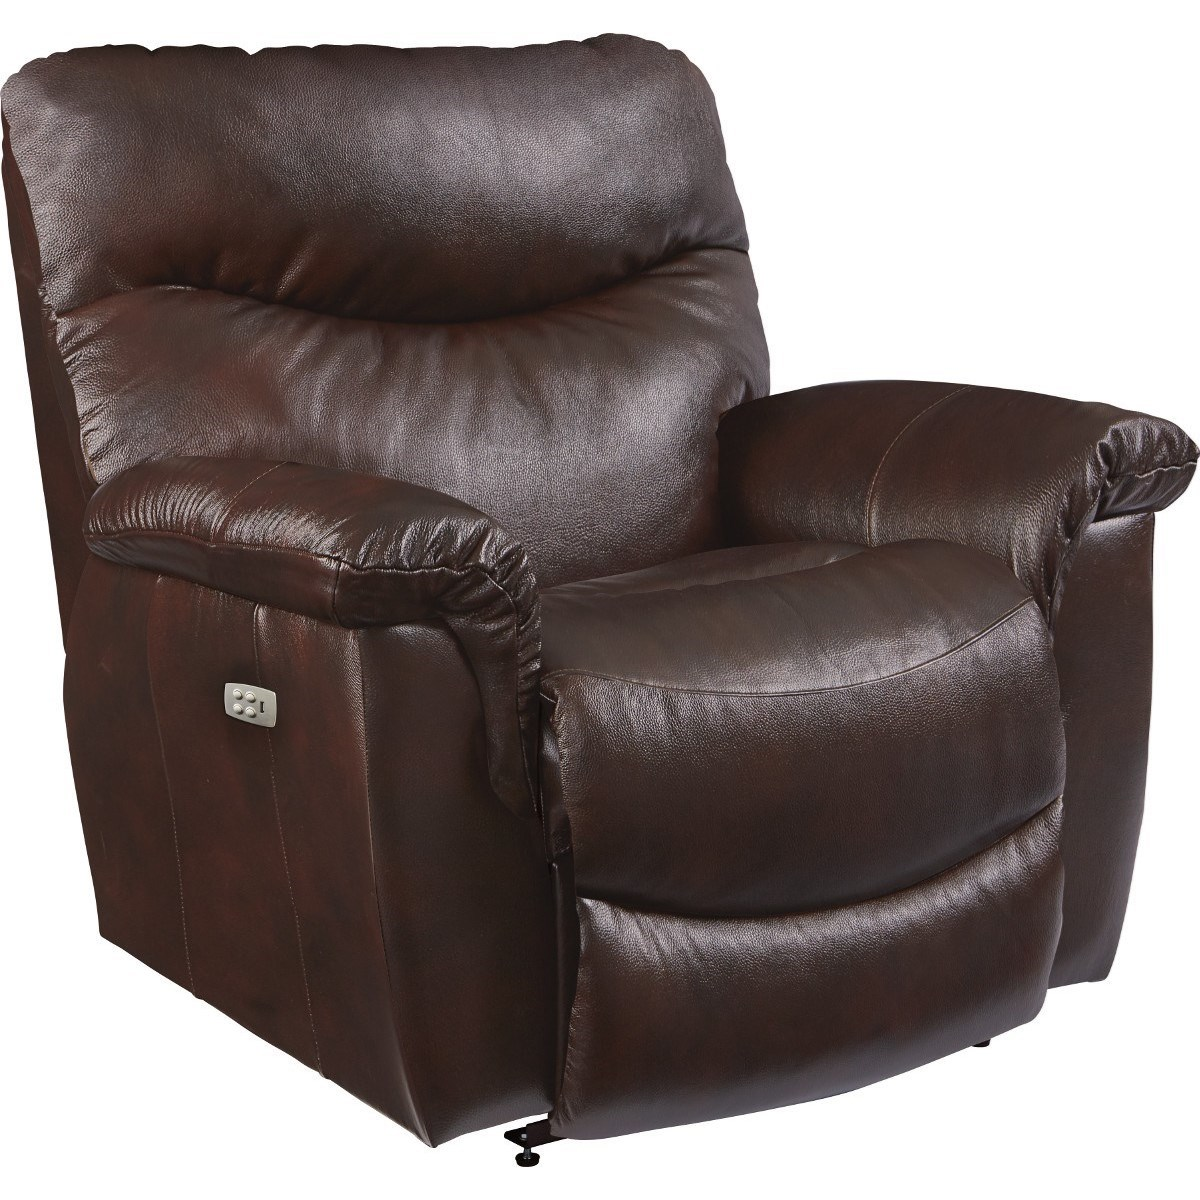 Casual La-Z-Time® Power Recliner with Power Headrest and USB Charging Port